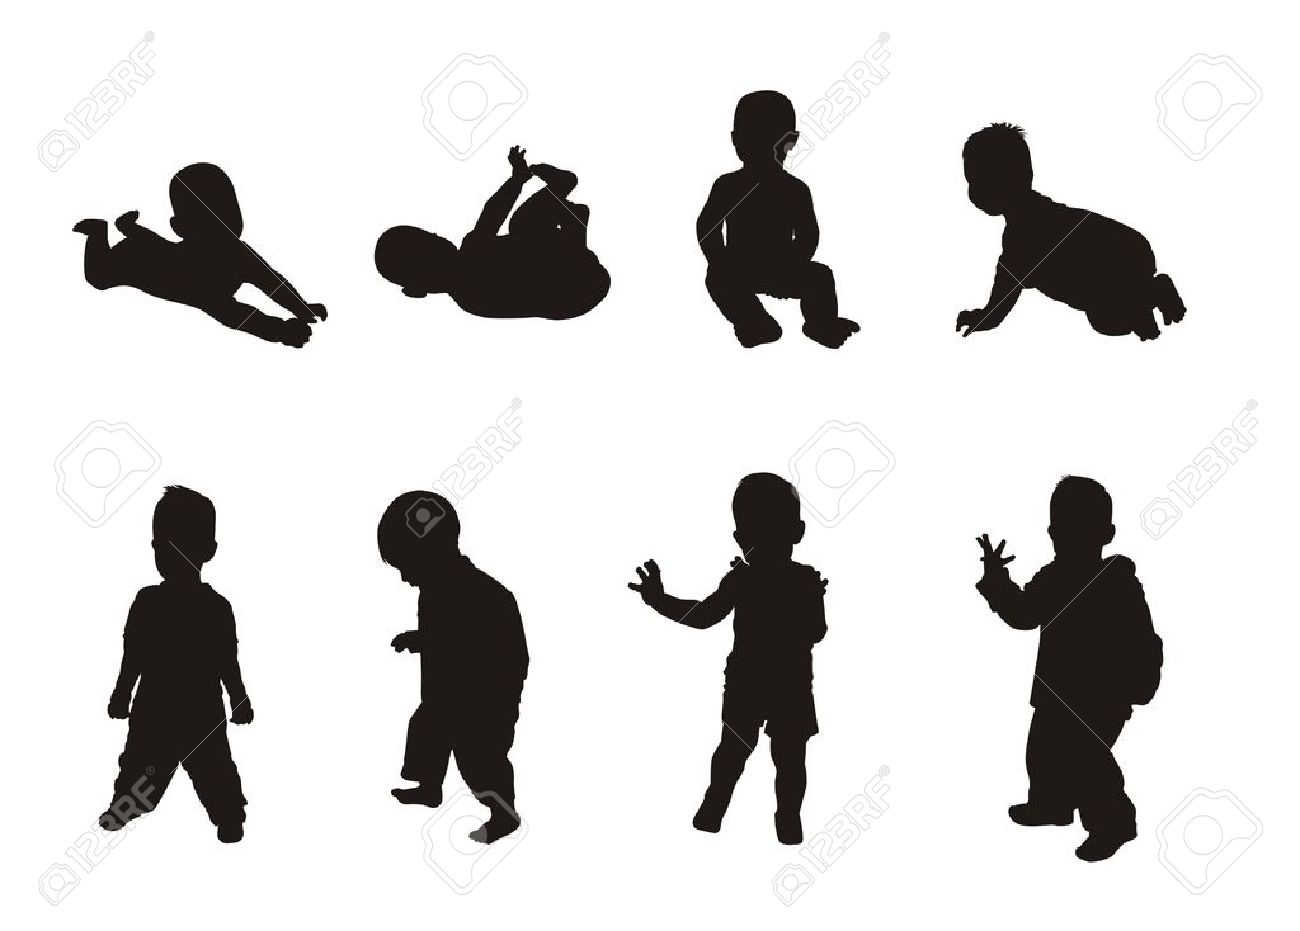 children silhouette at getdrawings com free for personal use rh getdrawings com child playing silhouette vector child ballerina silhouette vector